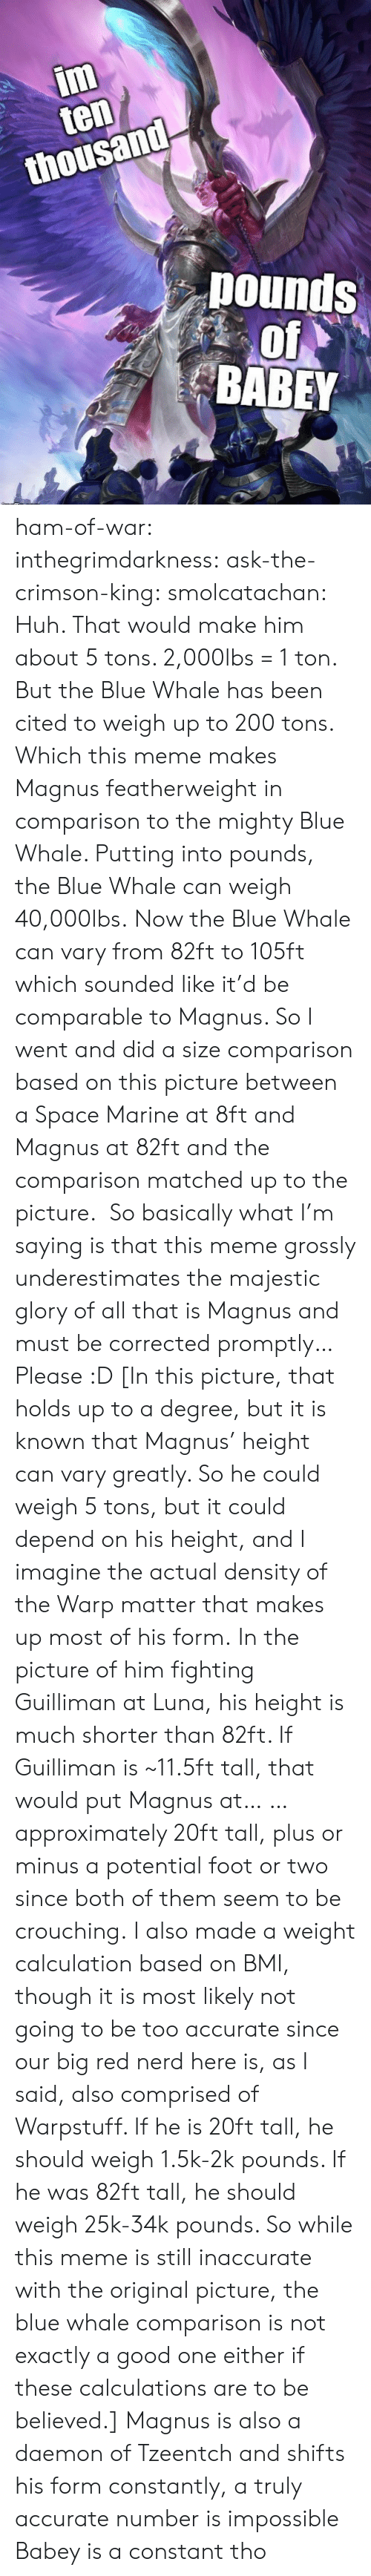 whale: im  ten  thousand  pounds  of  BABEY ham-of-war: inthegrimdarkness:   ask-the-crimson-king:   smolcatachan:  Huh. That would make him about 5 tons. 2,000lbs = 1 ton. But the Blue Whale has been cited to weigh up to 200 tons. Which this meme makes Magnus featherweight in comparison to the mighty Blue Whale. Putting into pounds, the Blue Whale can weigh 40,000lbs. Now the Blue Whale can vary from 82ft to 105ft which sounded like it'd be comparable to Magnus. So I went and did a size comparison based on this picture between a Space Marine at 8ft and Magnus at 82ft and the comparison matched up to the picture.  So basically what I'm saying is that this meme grossly underestimates the majestic glory of all that is Magnus and must be corrected promptly…Please :D  [In this picture, that holds up to a degree, but it is known that Magnus' height can vary greatly. So he could weigh 5 tons, but it could depend on his height, and I imagine the actual density of the Warp matter that makes up most of his form. In the picture of him fighting Guilliman at Luna, his height is much shorter than 82ft. If Guilliman is ~11.5ft tall, that would put Magnus at… … approximately 20ft tall, plus or minus a potential foot or two since both of them seem to be crouching. I also made a weight calculation based on BMI, though it is most likely not going to be too accurate since our big red nerd here is, as I said, also comprised of Warpstuff. If he is 20ft tall, he should weigh 1.5k-2k pounds. If he was 82ft tall, he should weigh 25k-34k pounds. So while this meme is still inaccurate with the original picture, the blue whale comparison is not exactly a good one either if these calculations are to be believed.]   Magnus is also a daemon of Tzeentch and shifts his form constantly, a truly accurate number is impossible    Babey is a constant tho